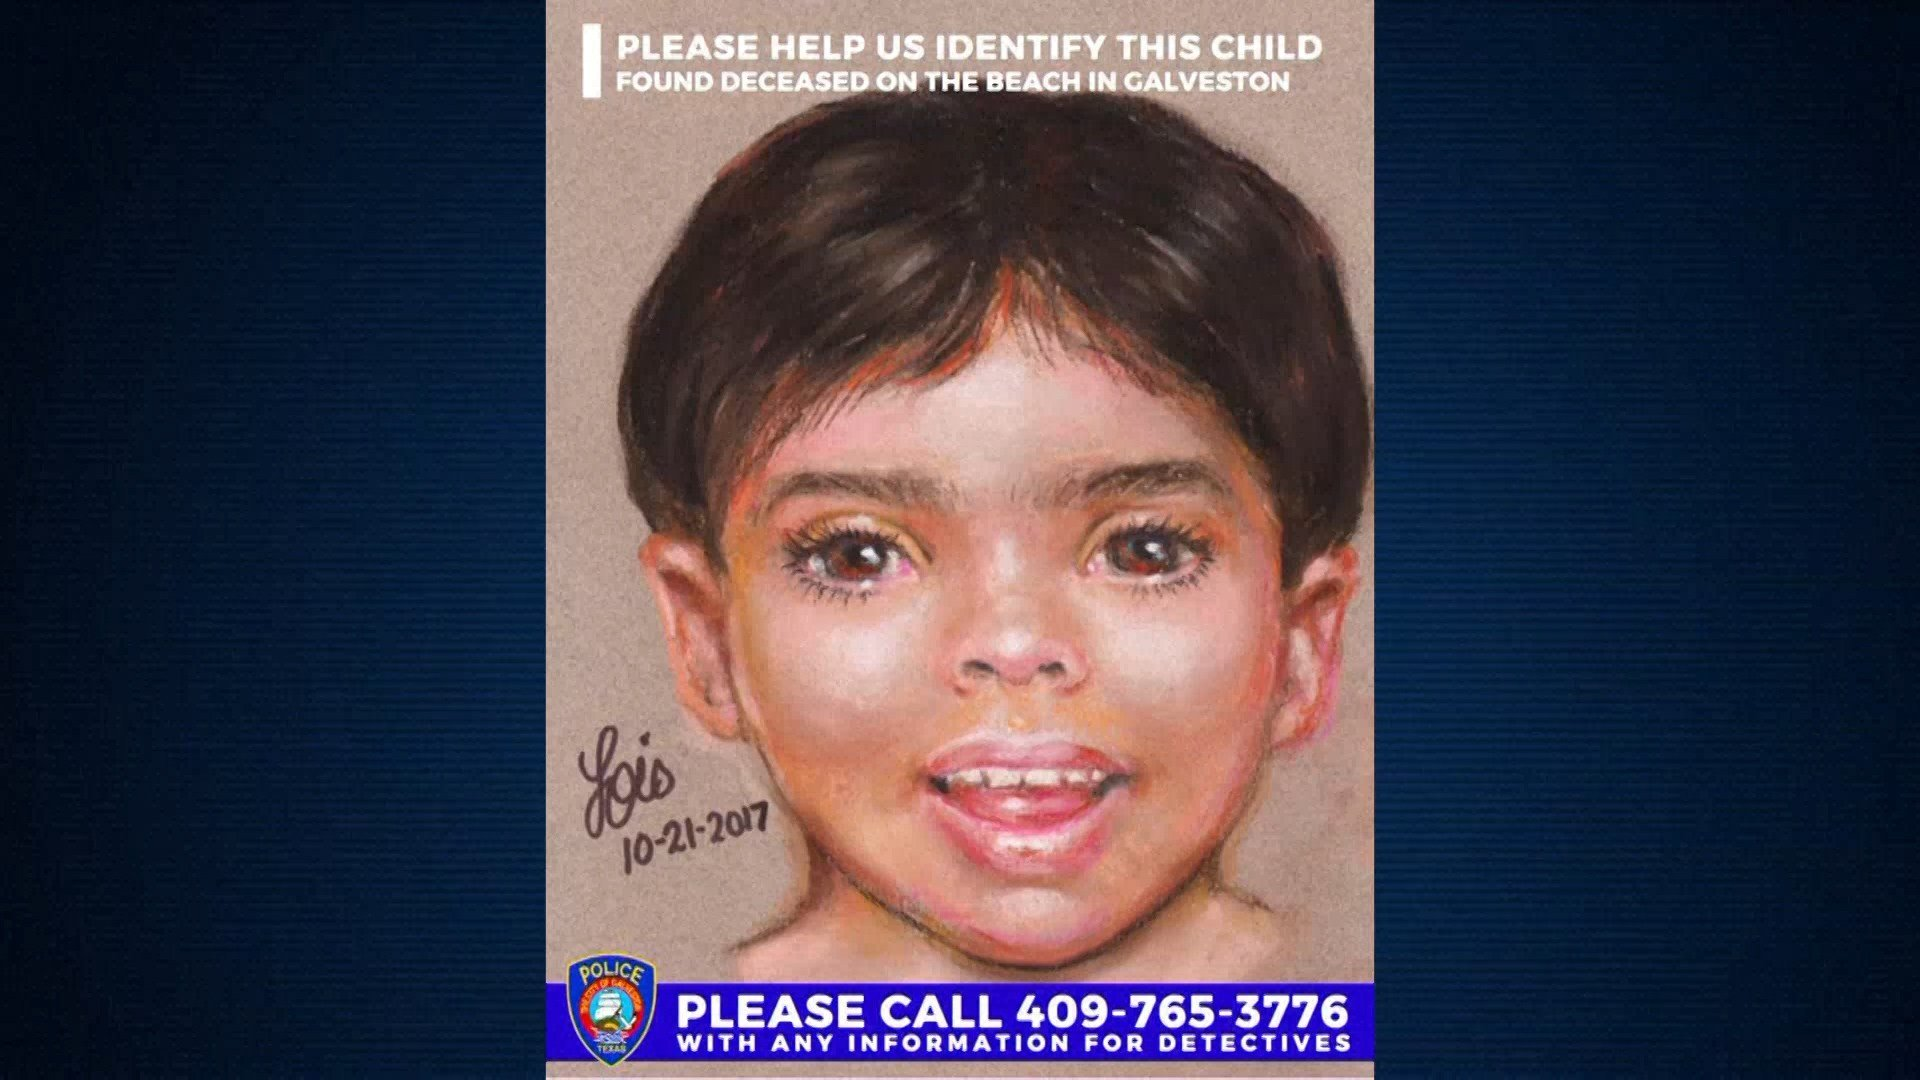 Police Seek Help To Identify Dead Boy Found On Texas Beach